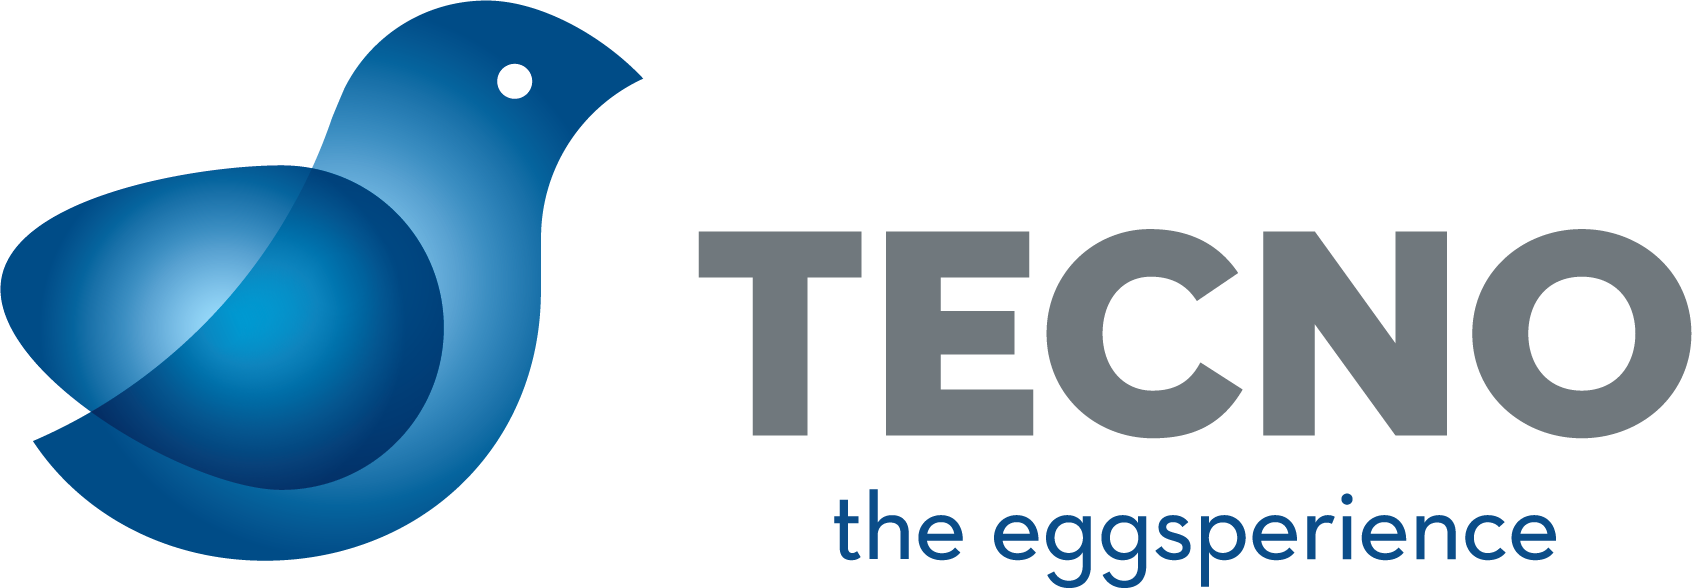 Tecno Poultry Equipment